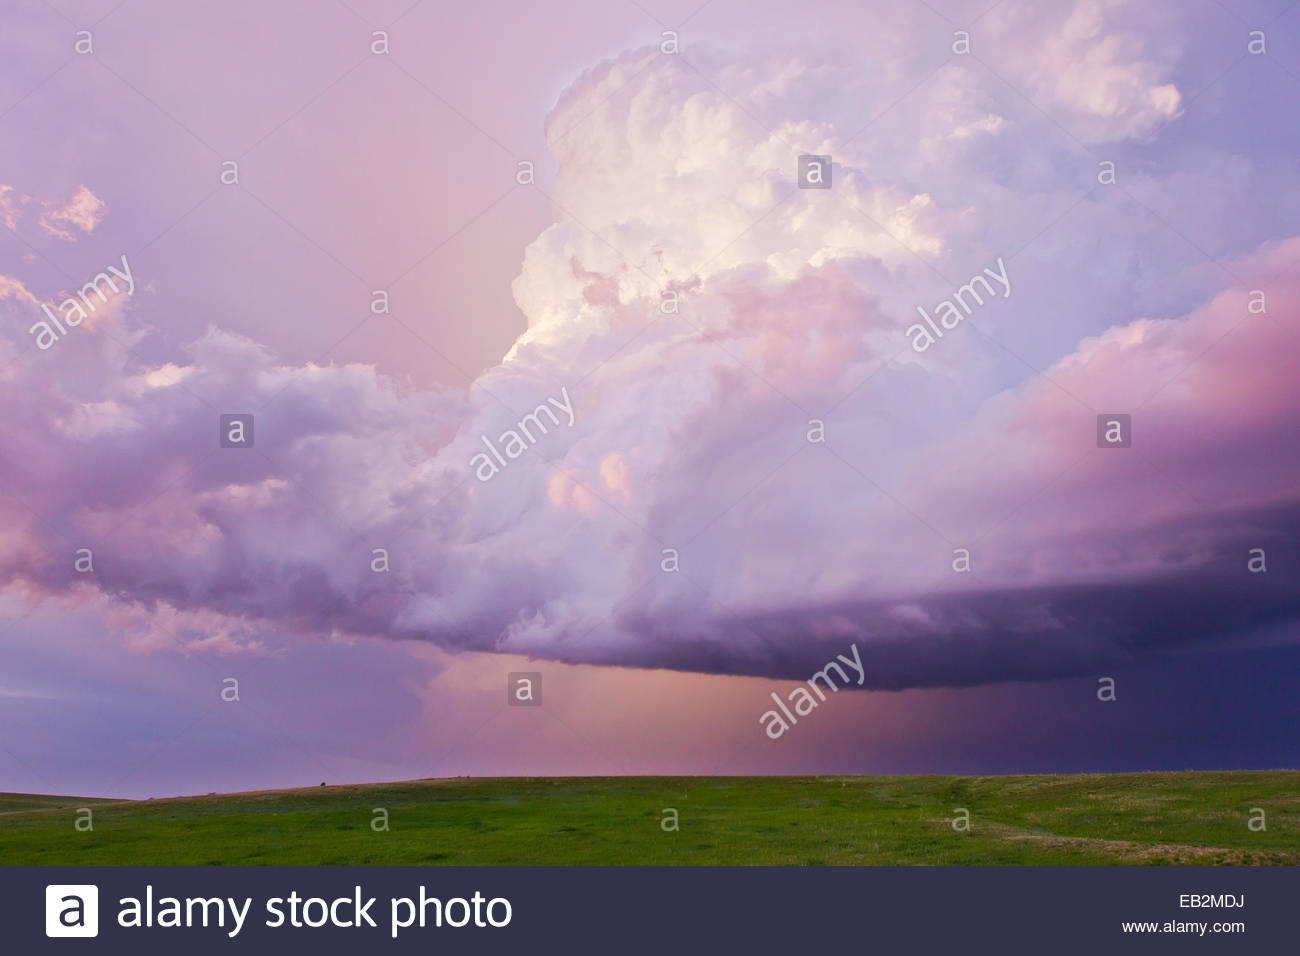 A decaying thunderstorm tinted pink and purple by sunset. - Stock Image